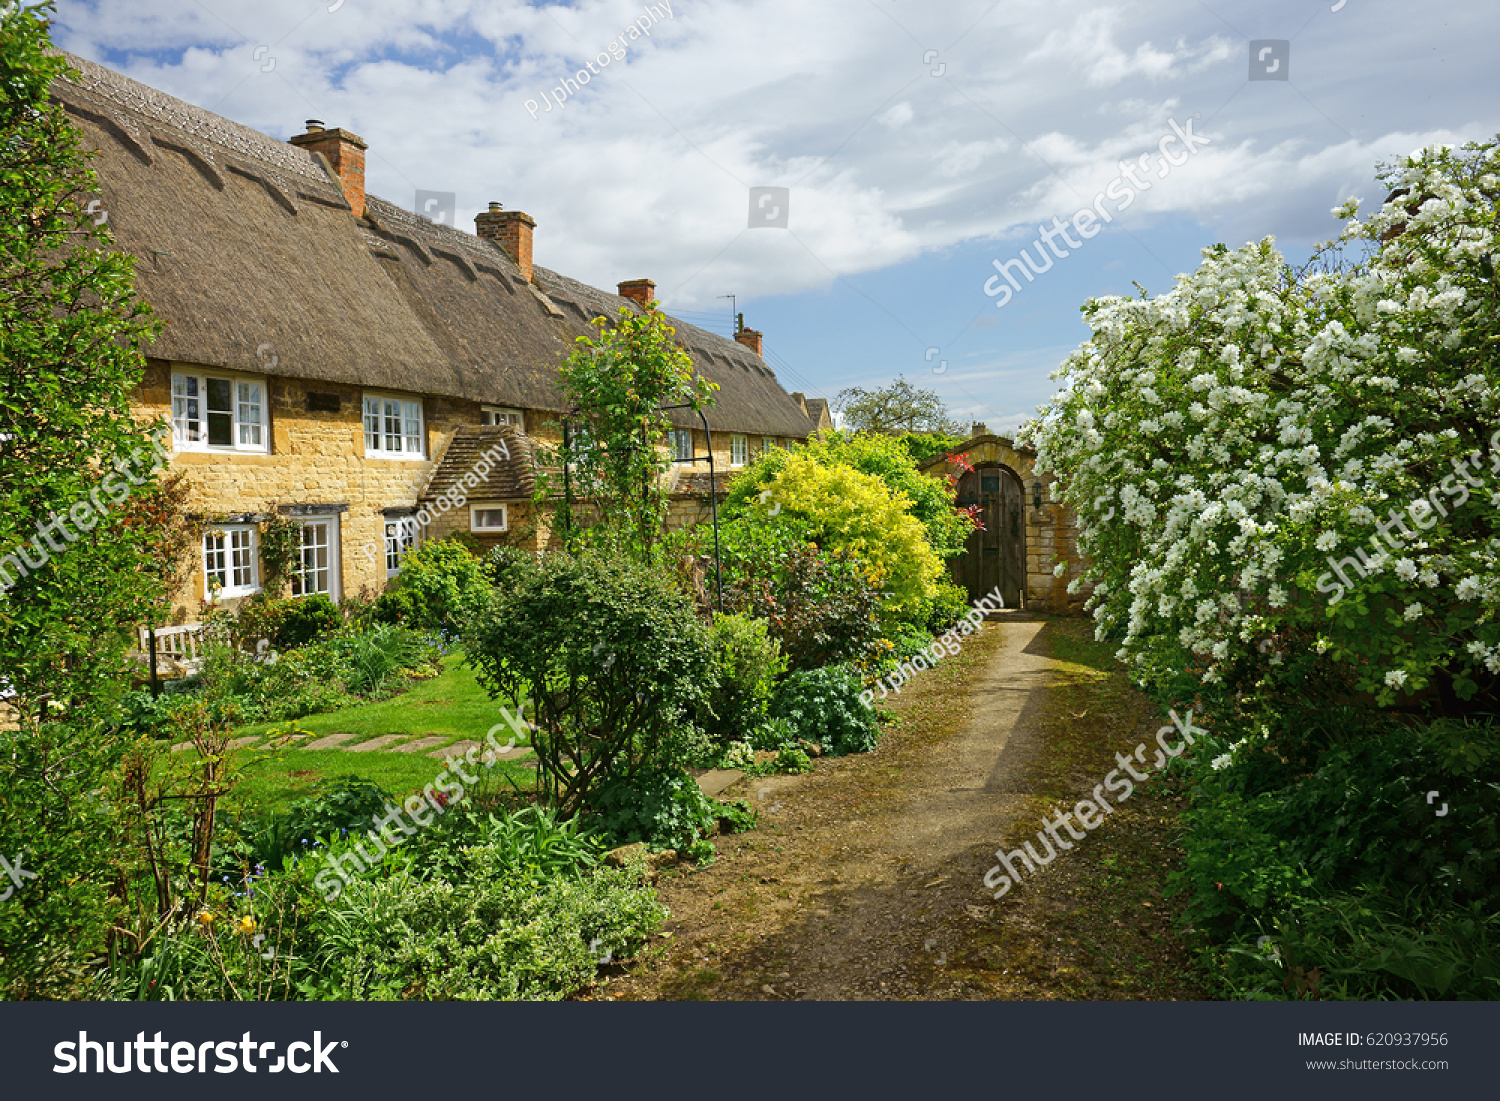 A Row Of Pretty Thatched Cottages And Gardens In Spring The Cotswold Town Chipping